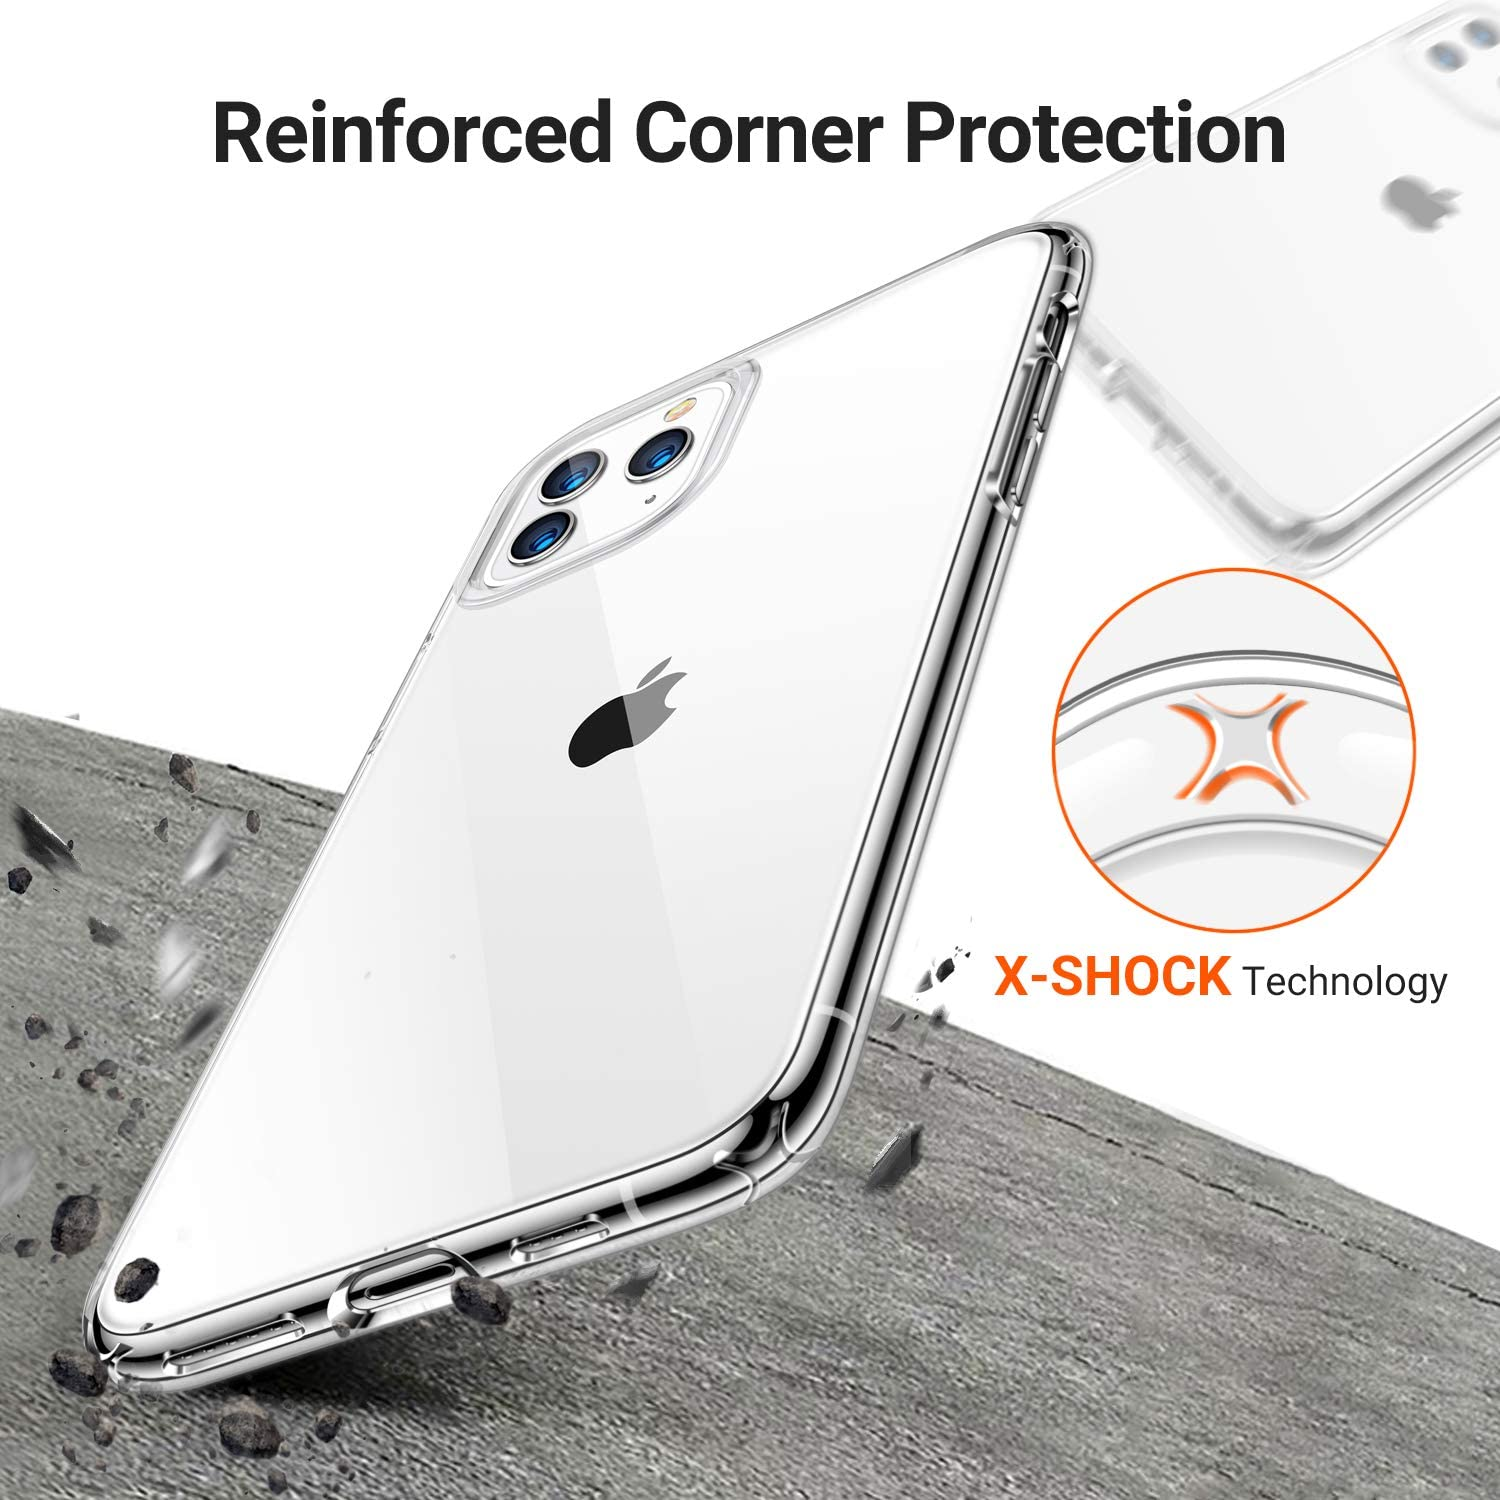 H6bd334c45f2e4c6bb74ba21a1778b0b4V - For iPhone XR 11 SE 2020 Case Crystal Clear Phone Case for iPhone SE 8 7 6s 6 5s 11 Pro Max Xs Max Case TPU Shockproof Cover